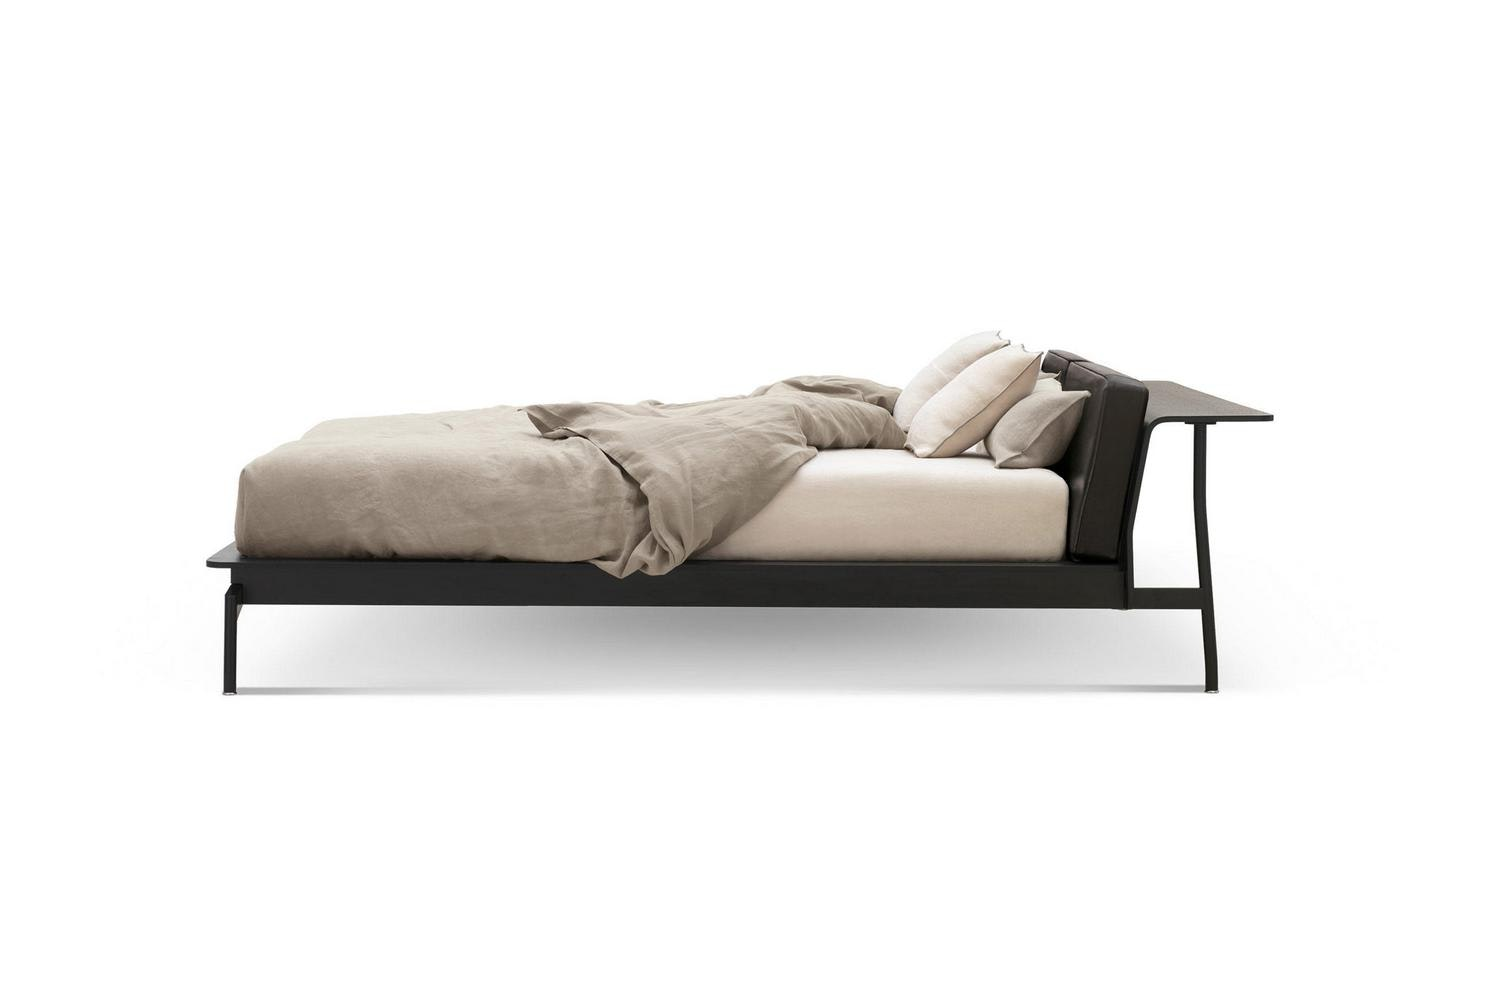 L41 Sled Bed by Rodolfo Dordoni for Cassina